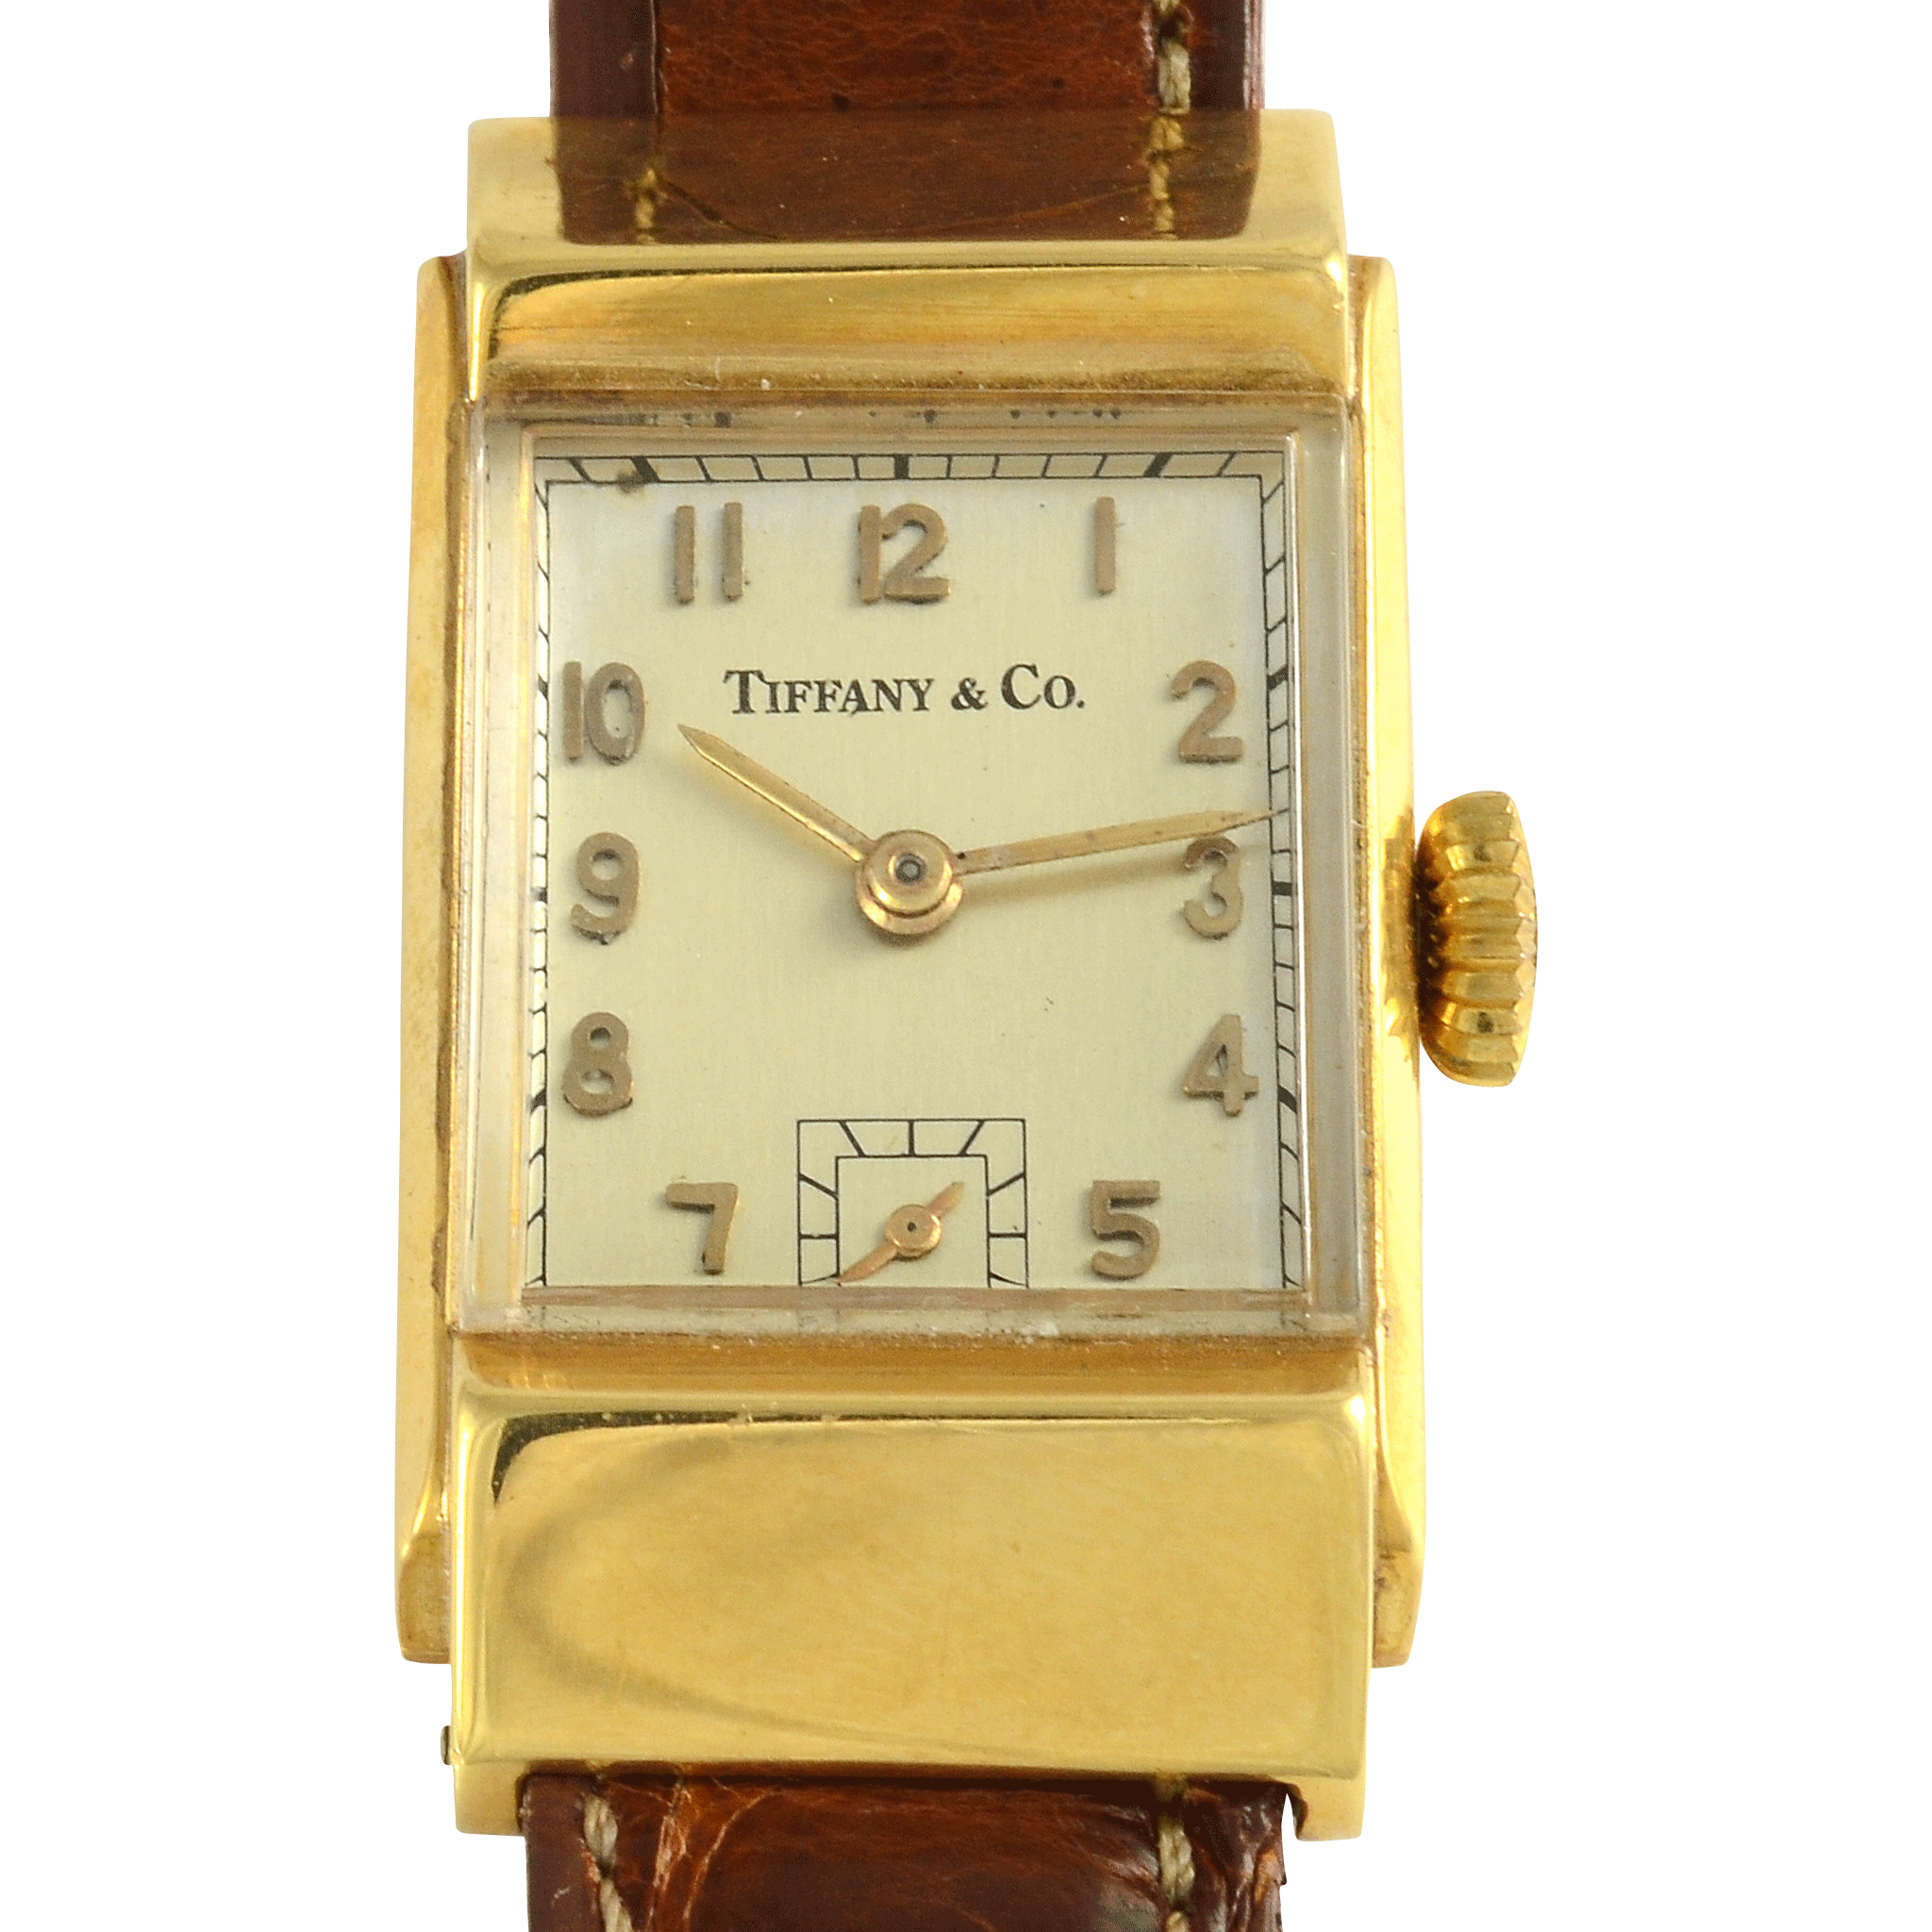 Swiss Wrist Watch for Tiffany & Co by C.H. Meylan